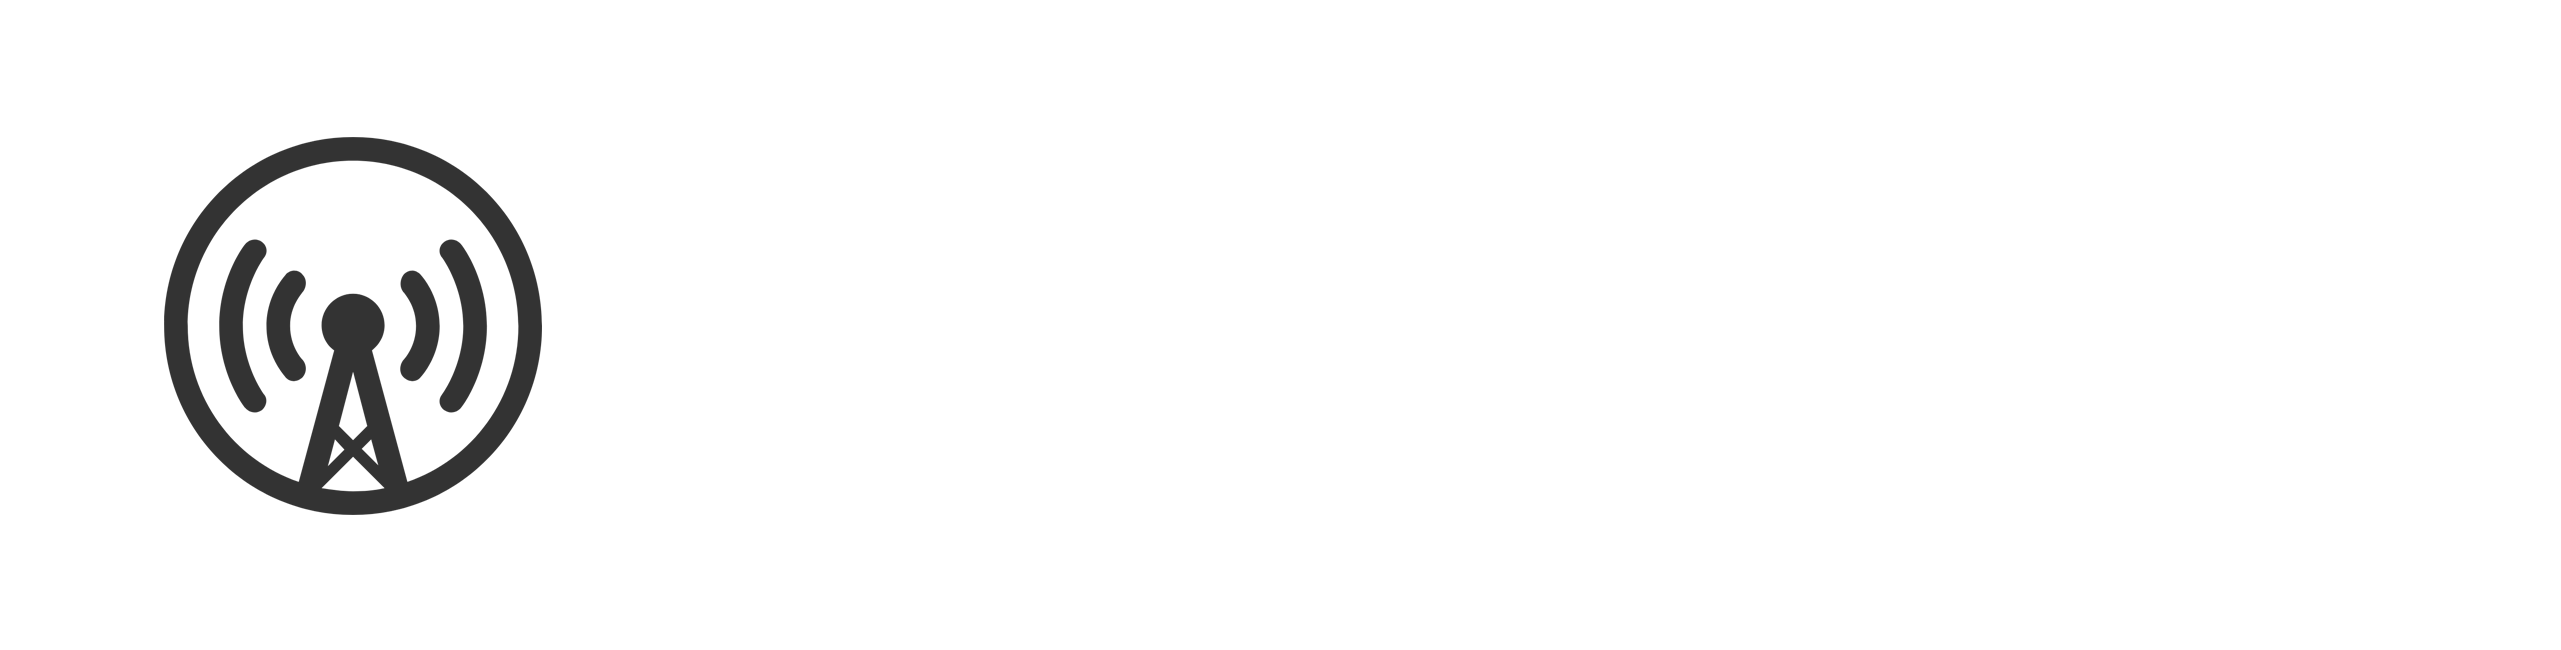 Subscribe Overcast